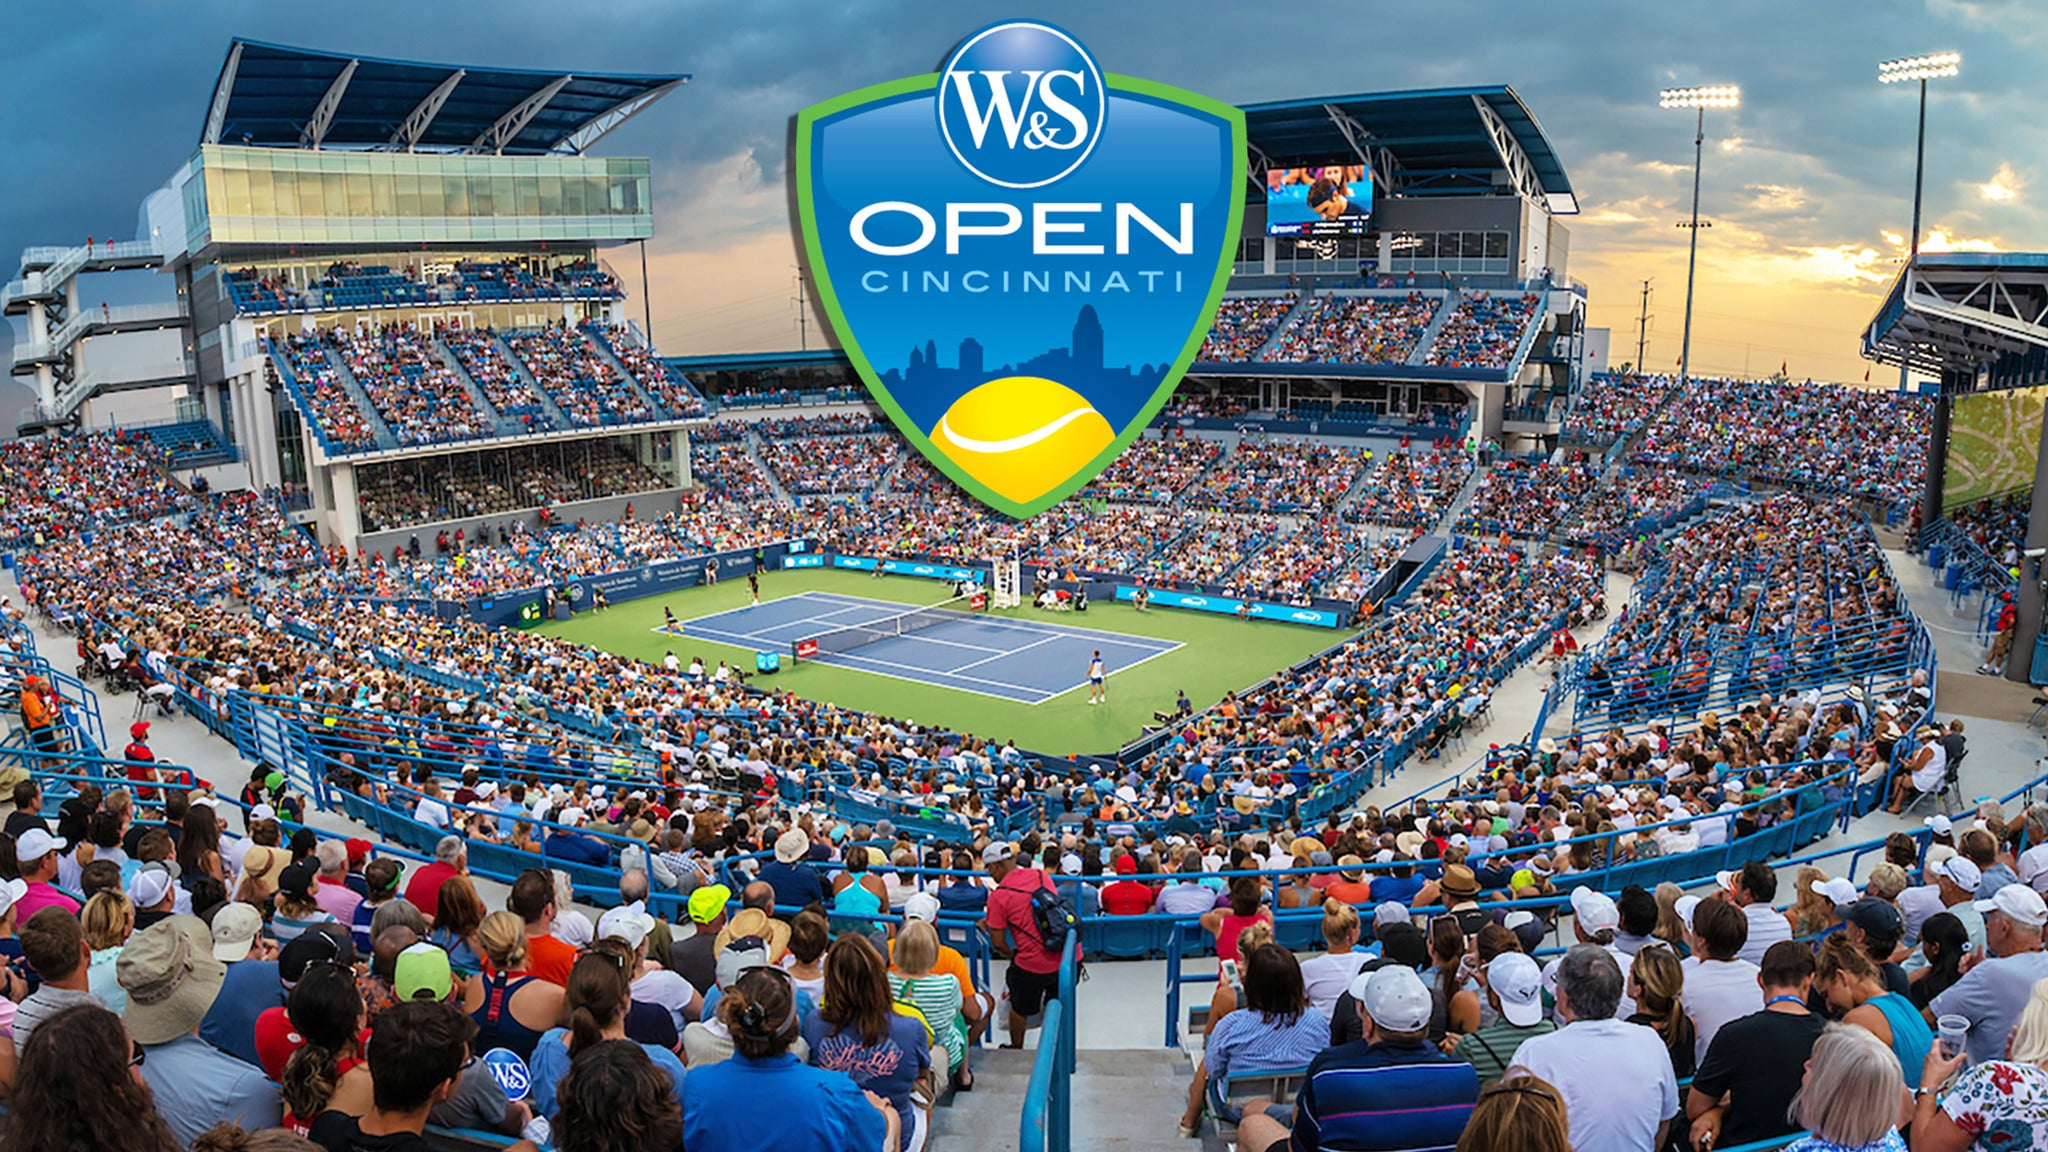 Western & Southern Open Session 2